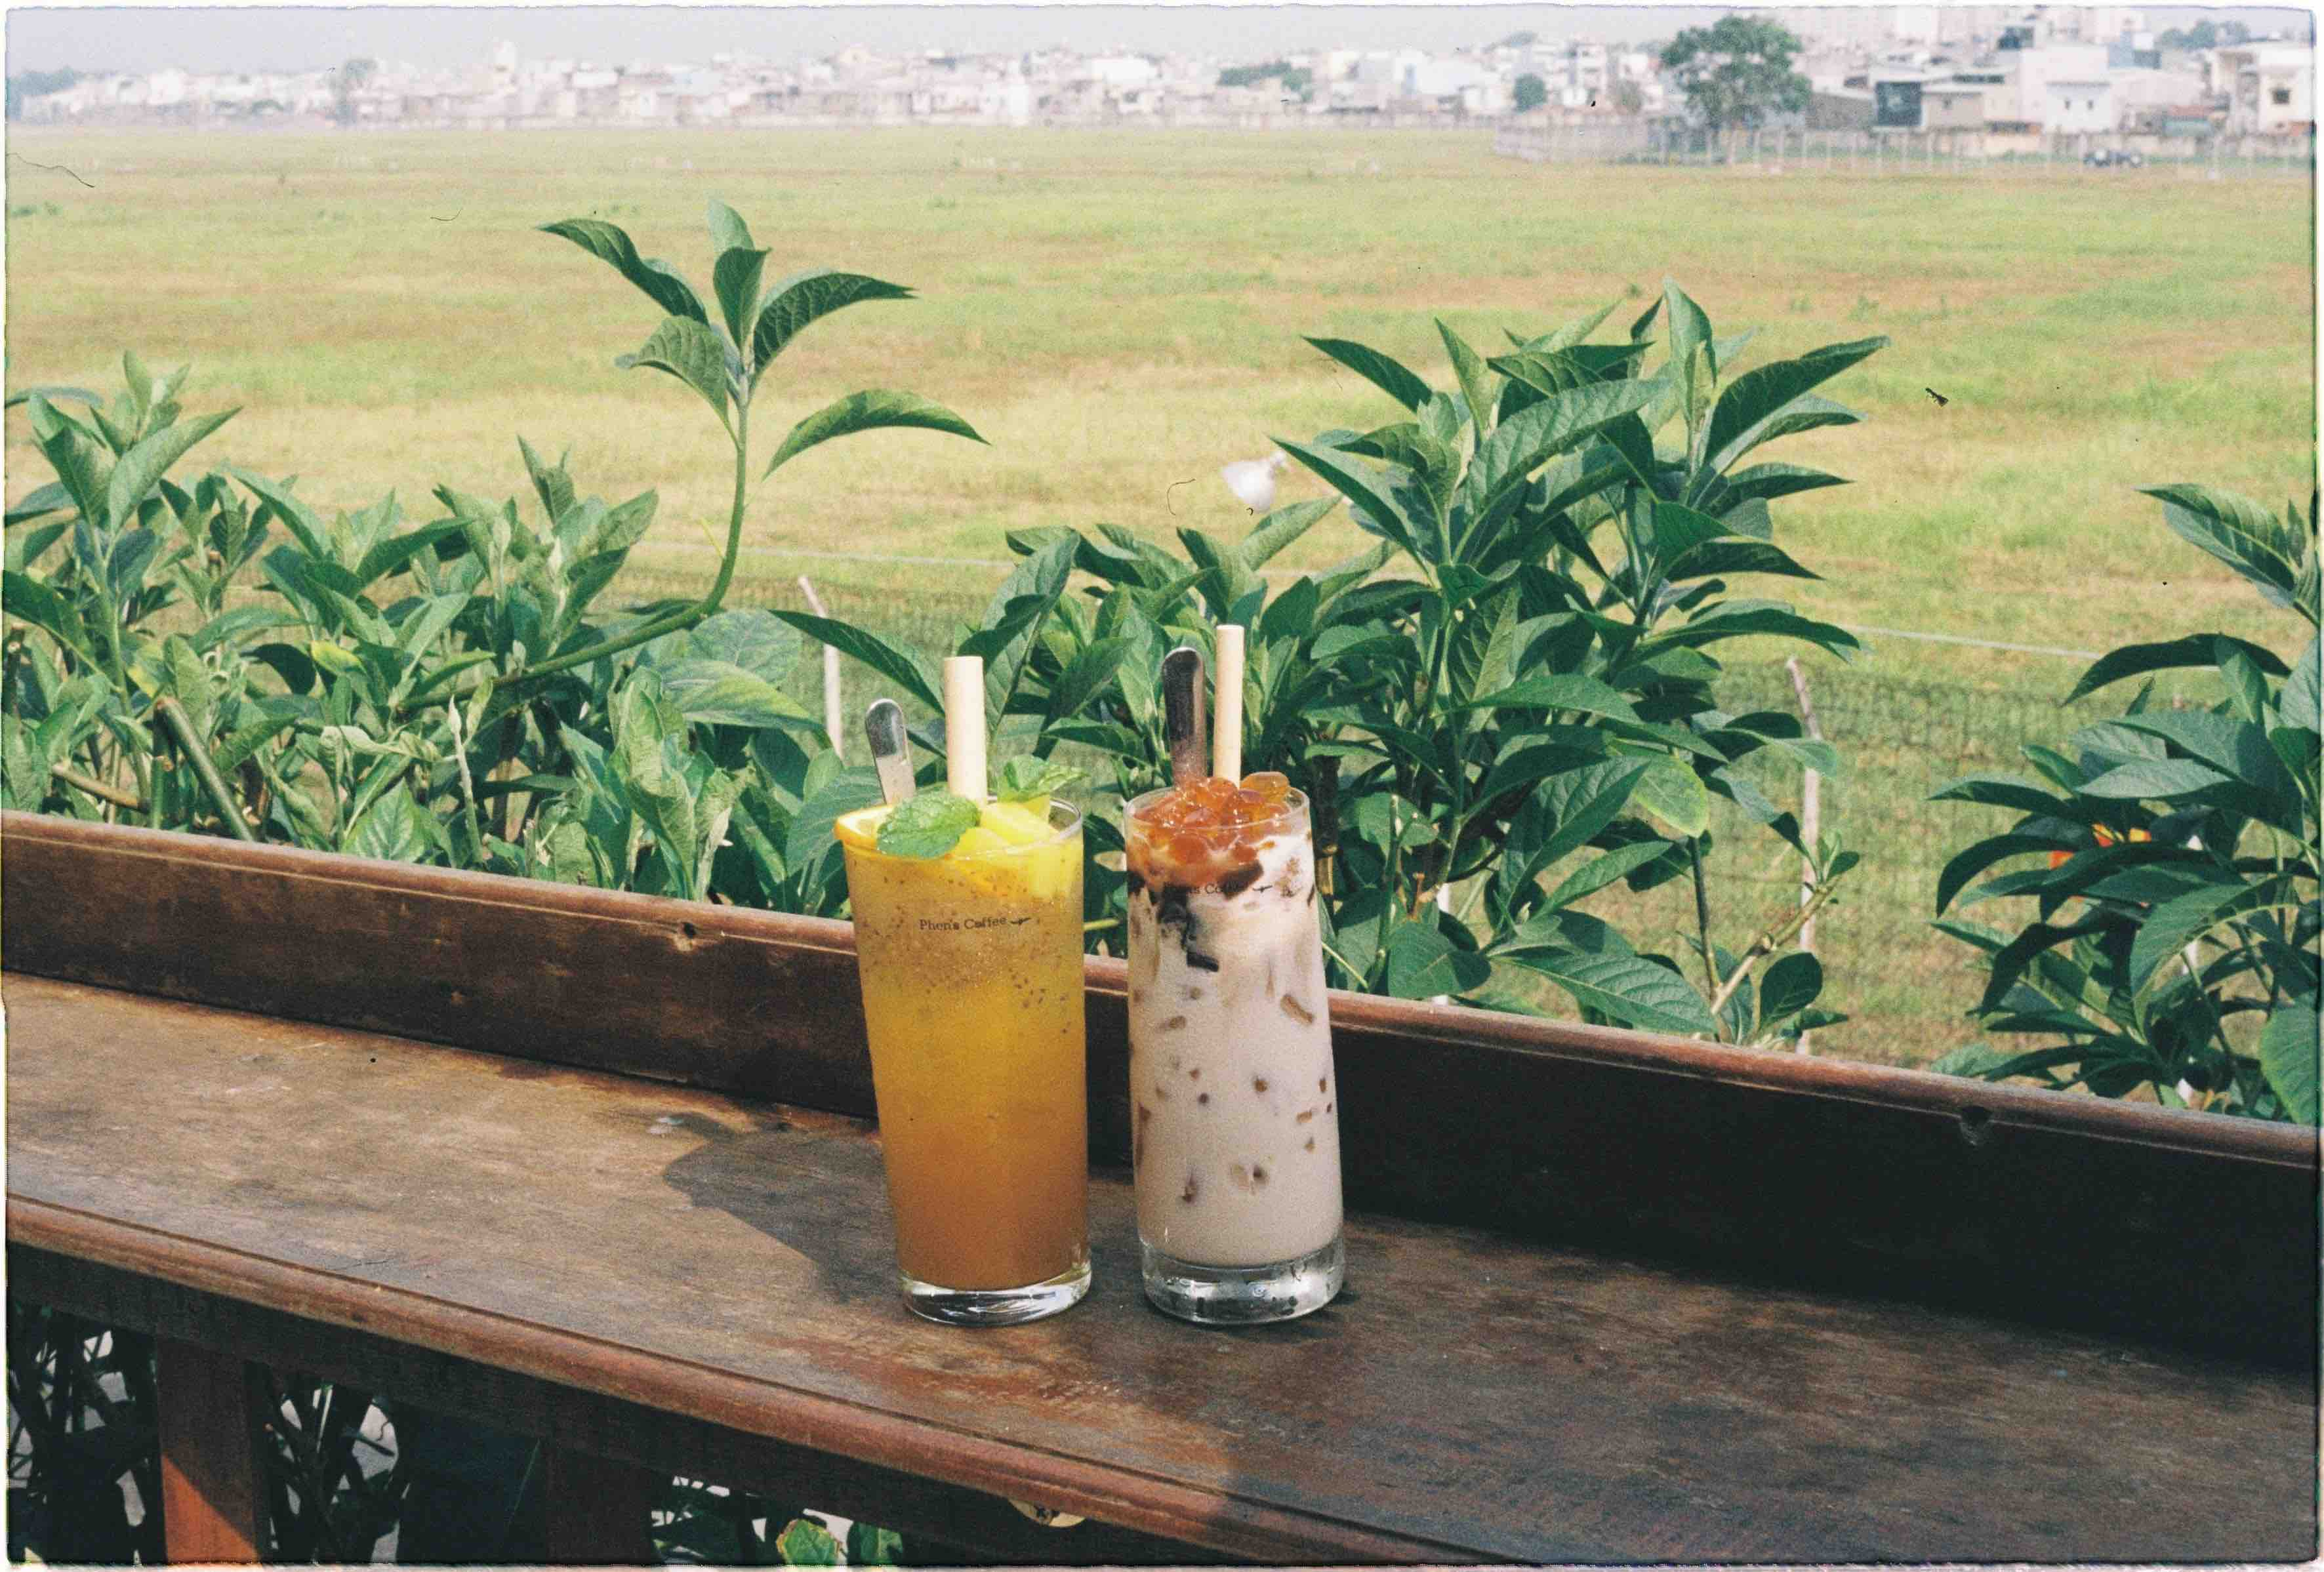 Drinks being being served at Phen's Café. Photo: Linh To / Tuoi Tre